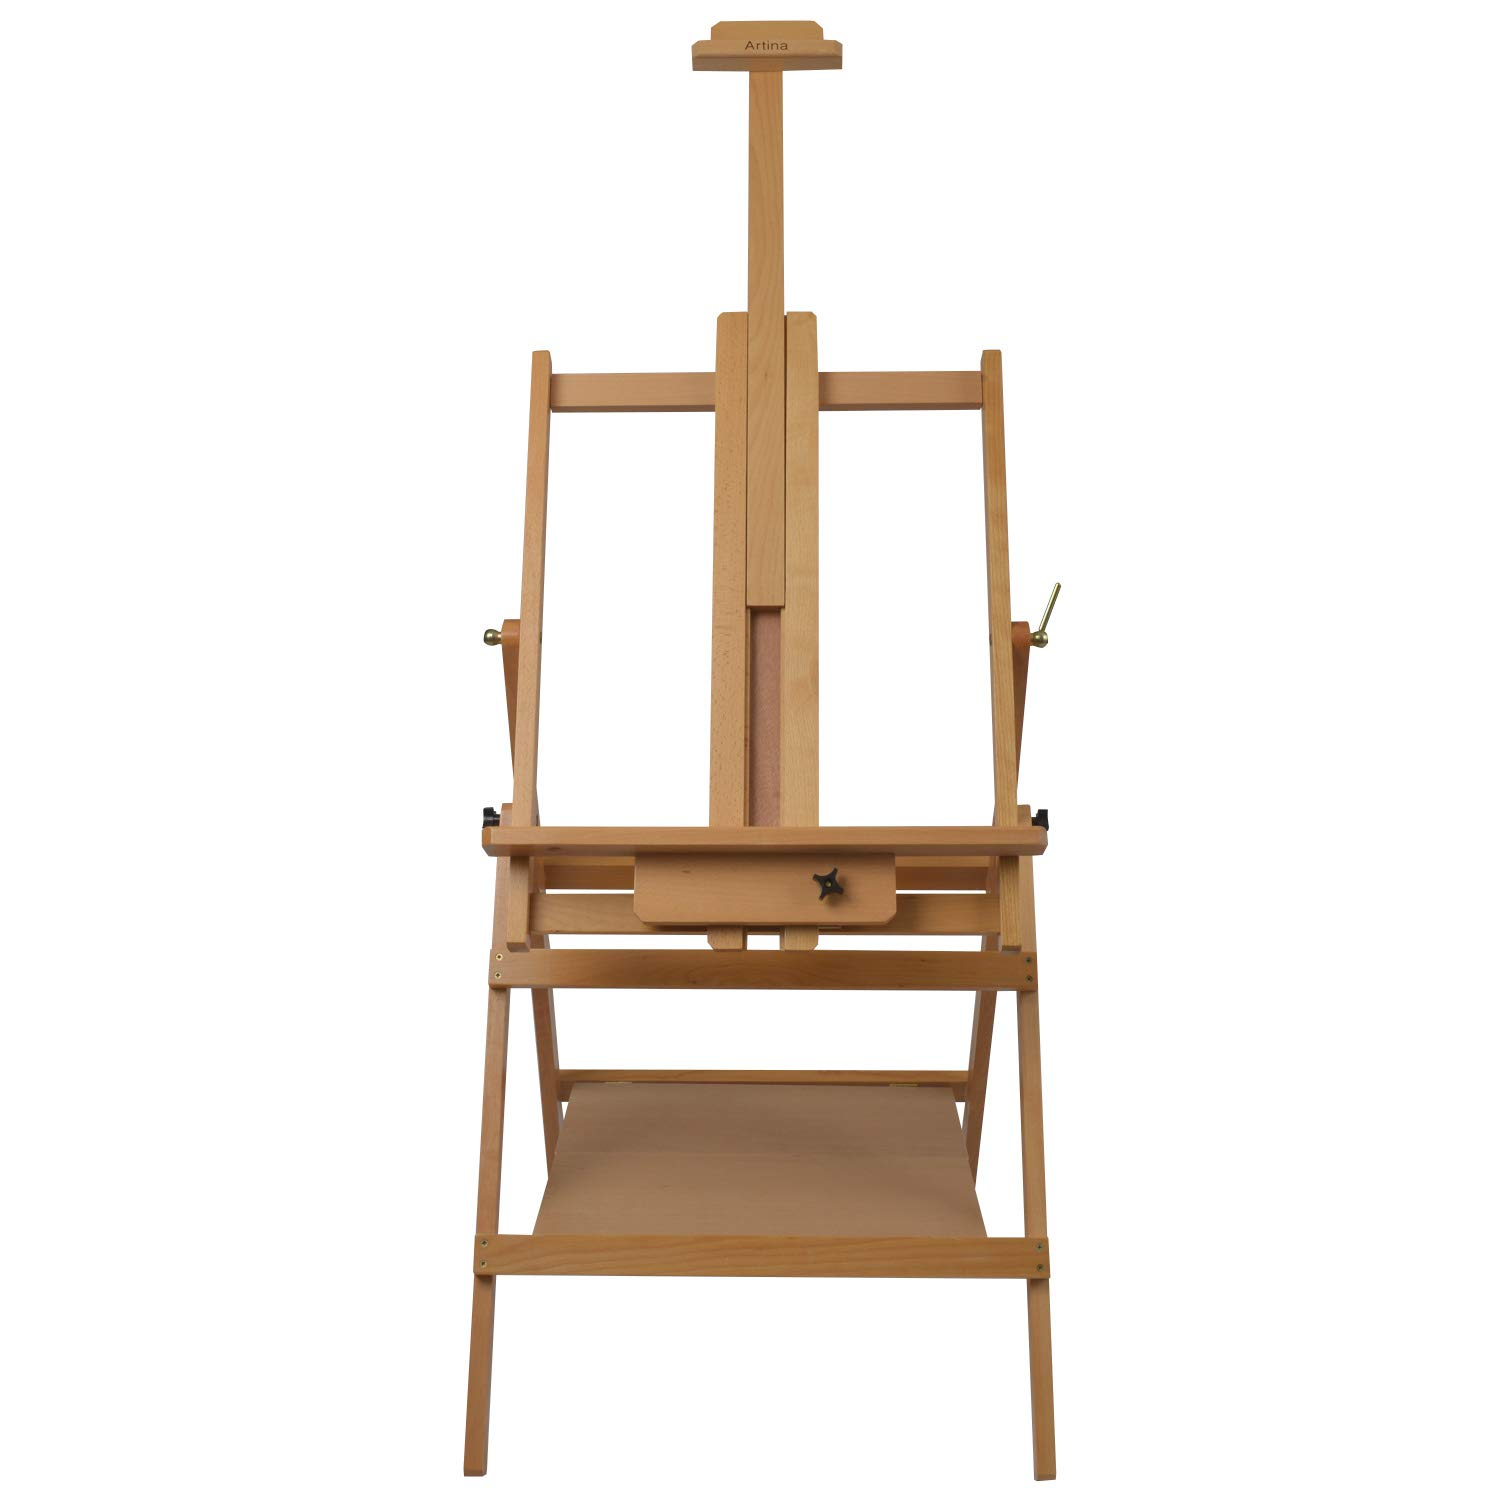 Artina Lyon Artists Easel Quad Leg H frame Studio/Watercolour Solid Beech-Wood Art Painting Easel Vertical to Flat 15134